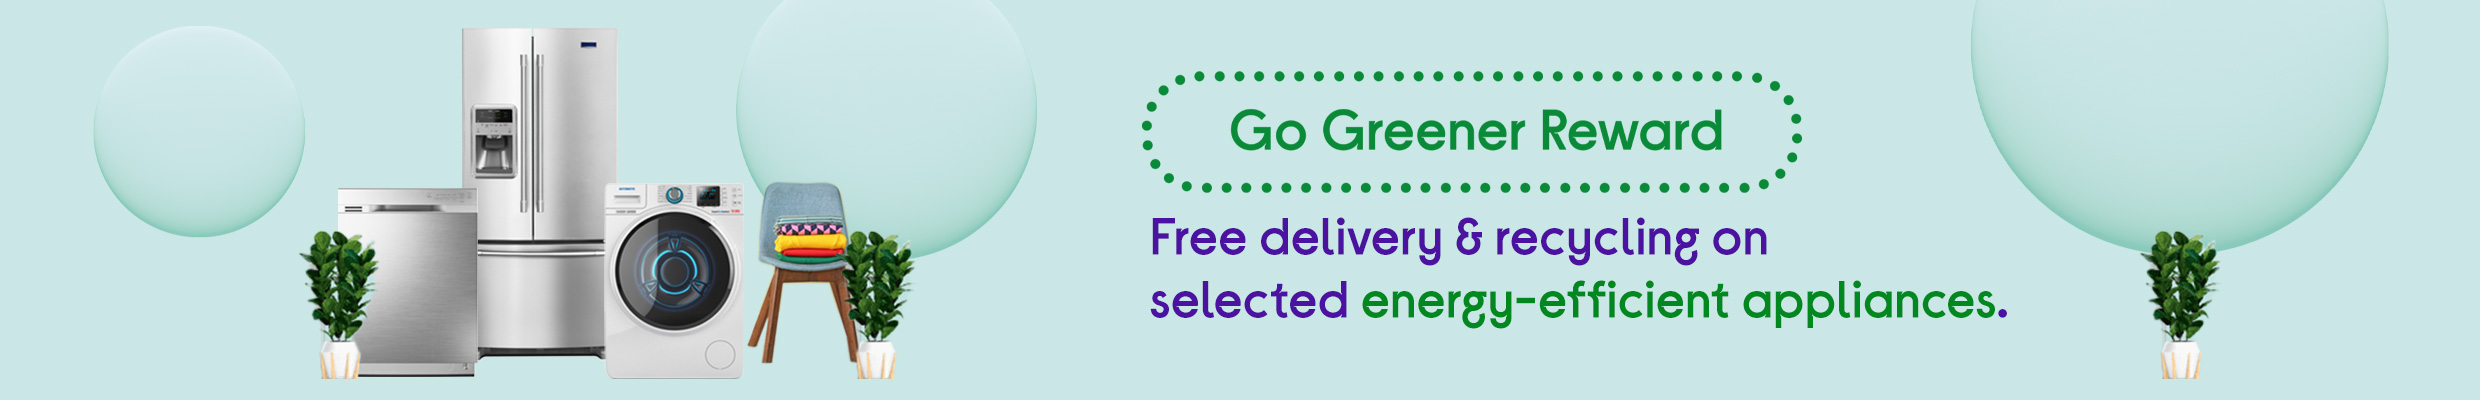 Go Greener with Free Delivery on energy-efficient appliances